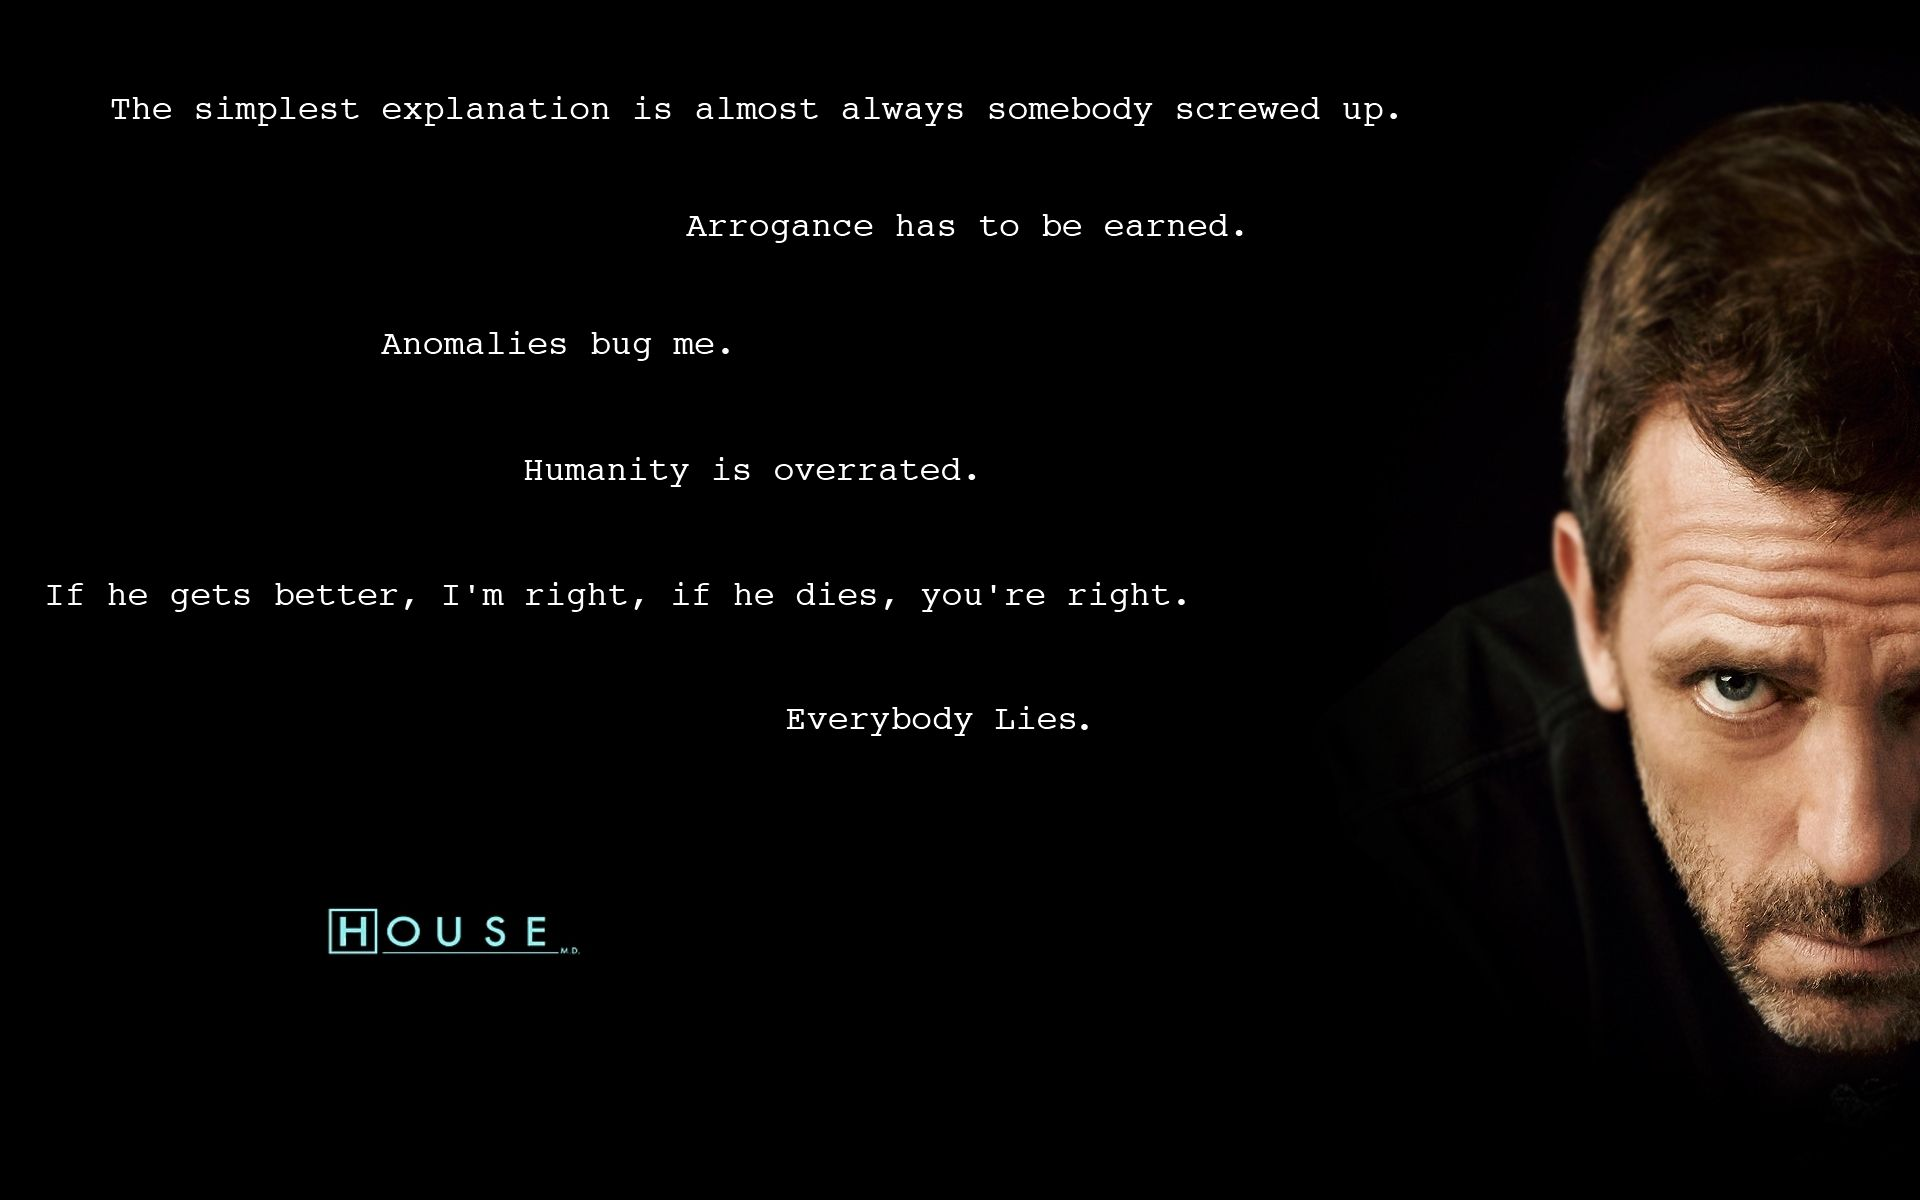 Dr House Quotes Everybody Lies Dr House Quotes Dishonesty Quotes Environmental Quotes